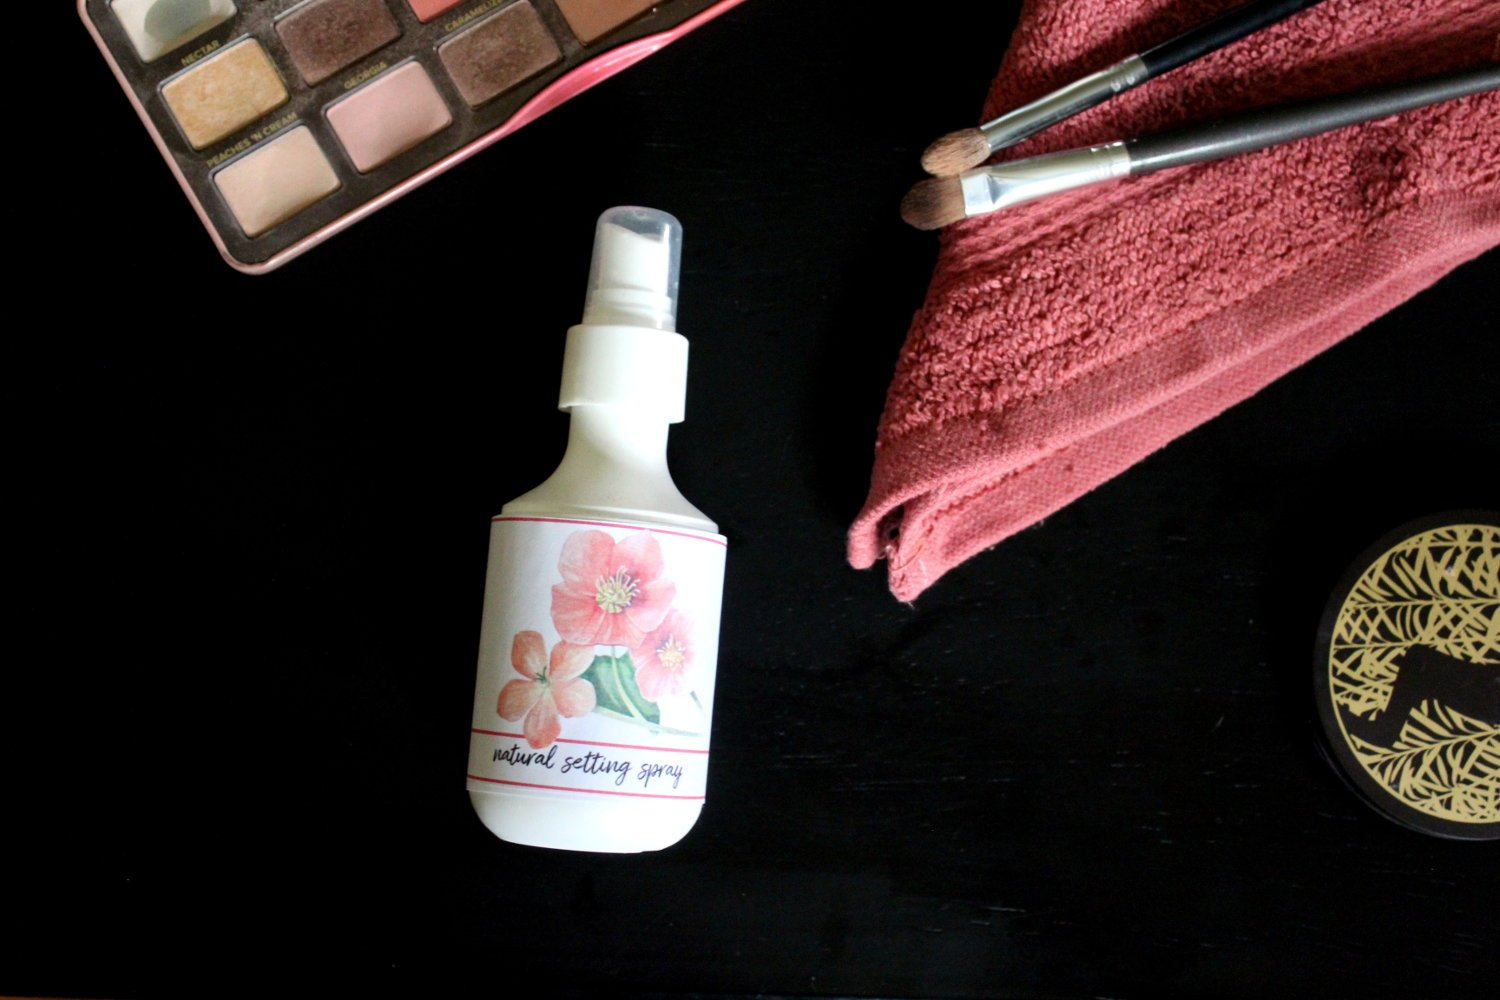 All Natural Makeup Setting Spray DIY. This natural makeup setting spray is more than just a makeup setting spray. It's also a multi-purpose product that doubles as a skin hydrating spray that soothes and hydrates skin. So it's not only perfect for keeping your makeup in place all summer long. It also hydrates parched skin and soothes summer sunburns.